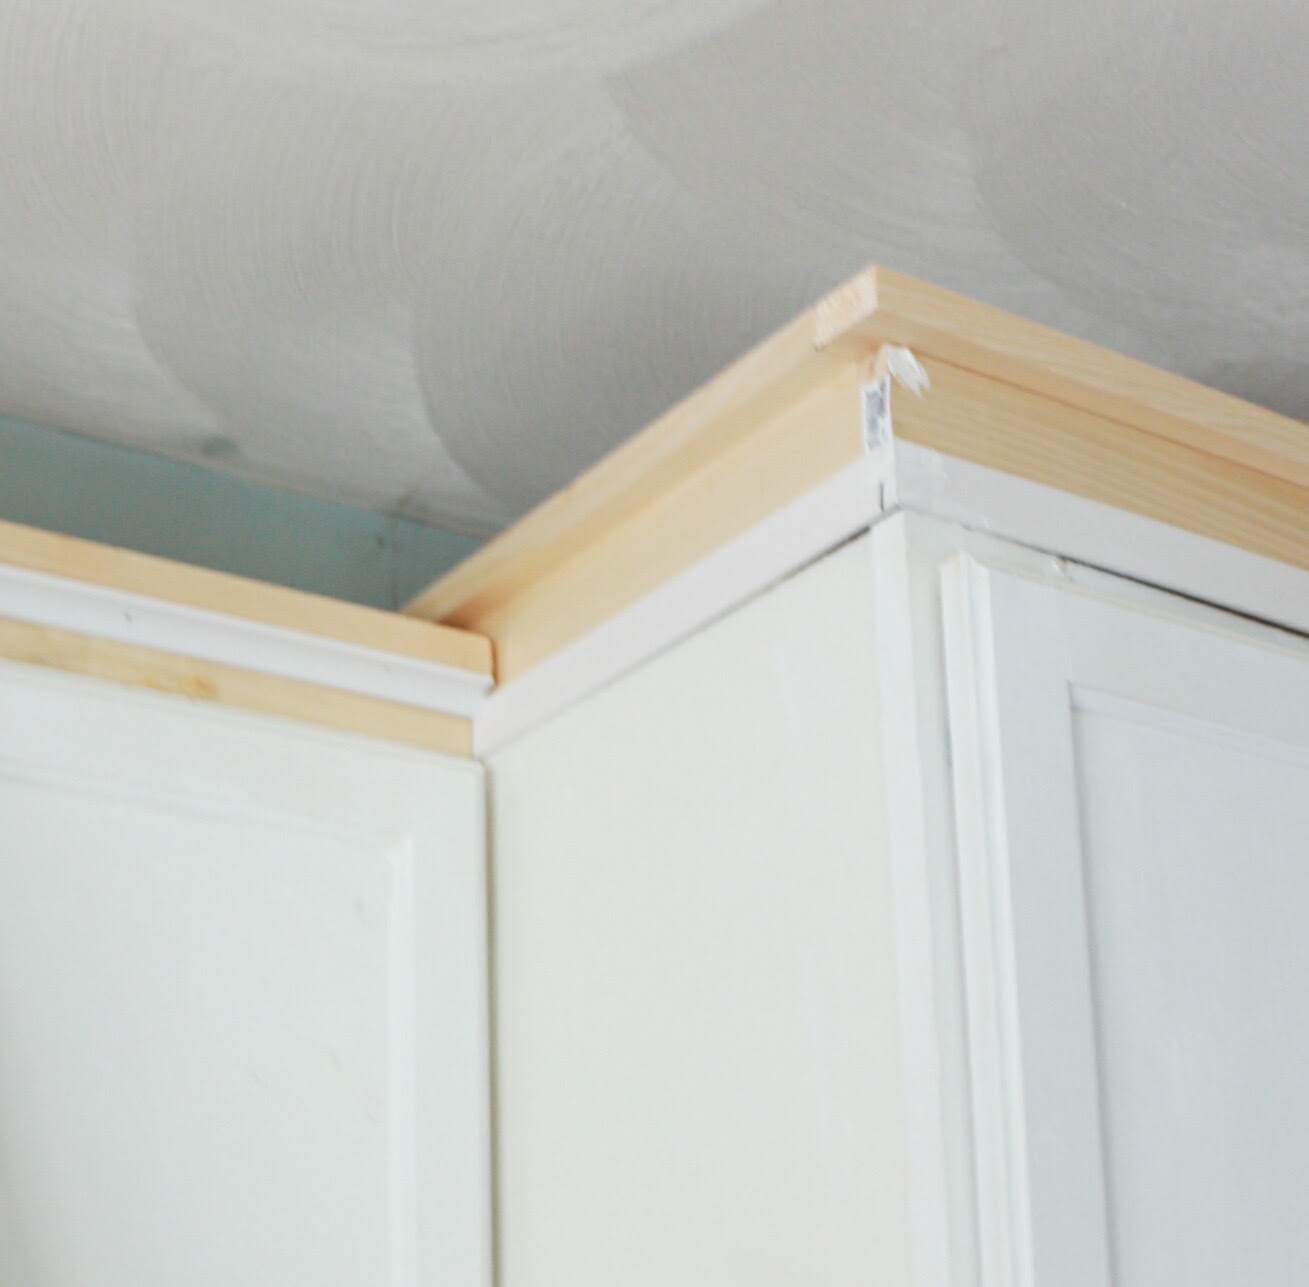 Installing Crown Molding On Kitchen Cabinets: My DIY Kitchen: Cabinet Crown Molding, How To Fake The